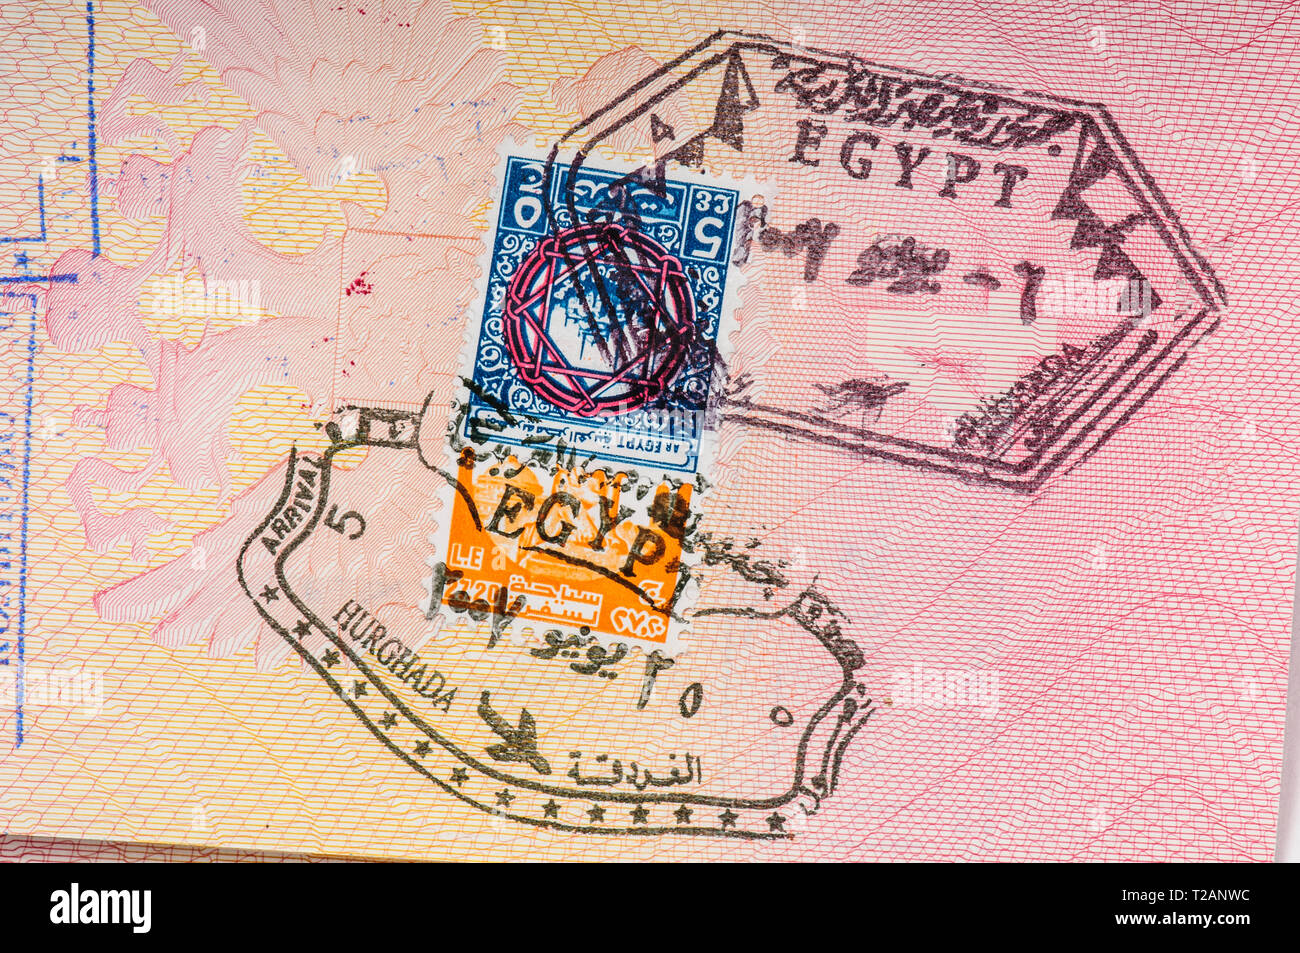 Egypt Visa High Resolution Stock Photography And Images Alamy